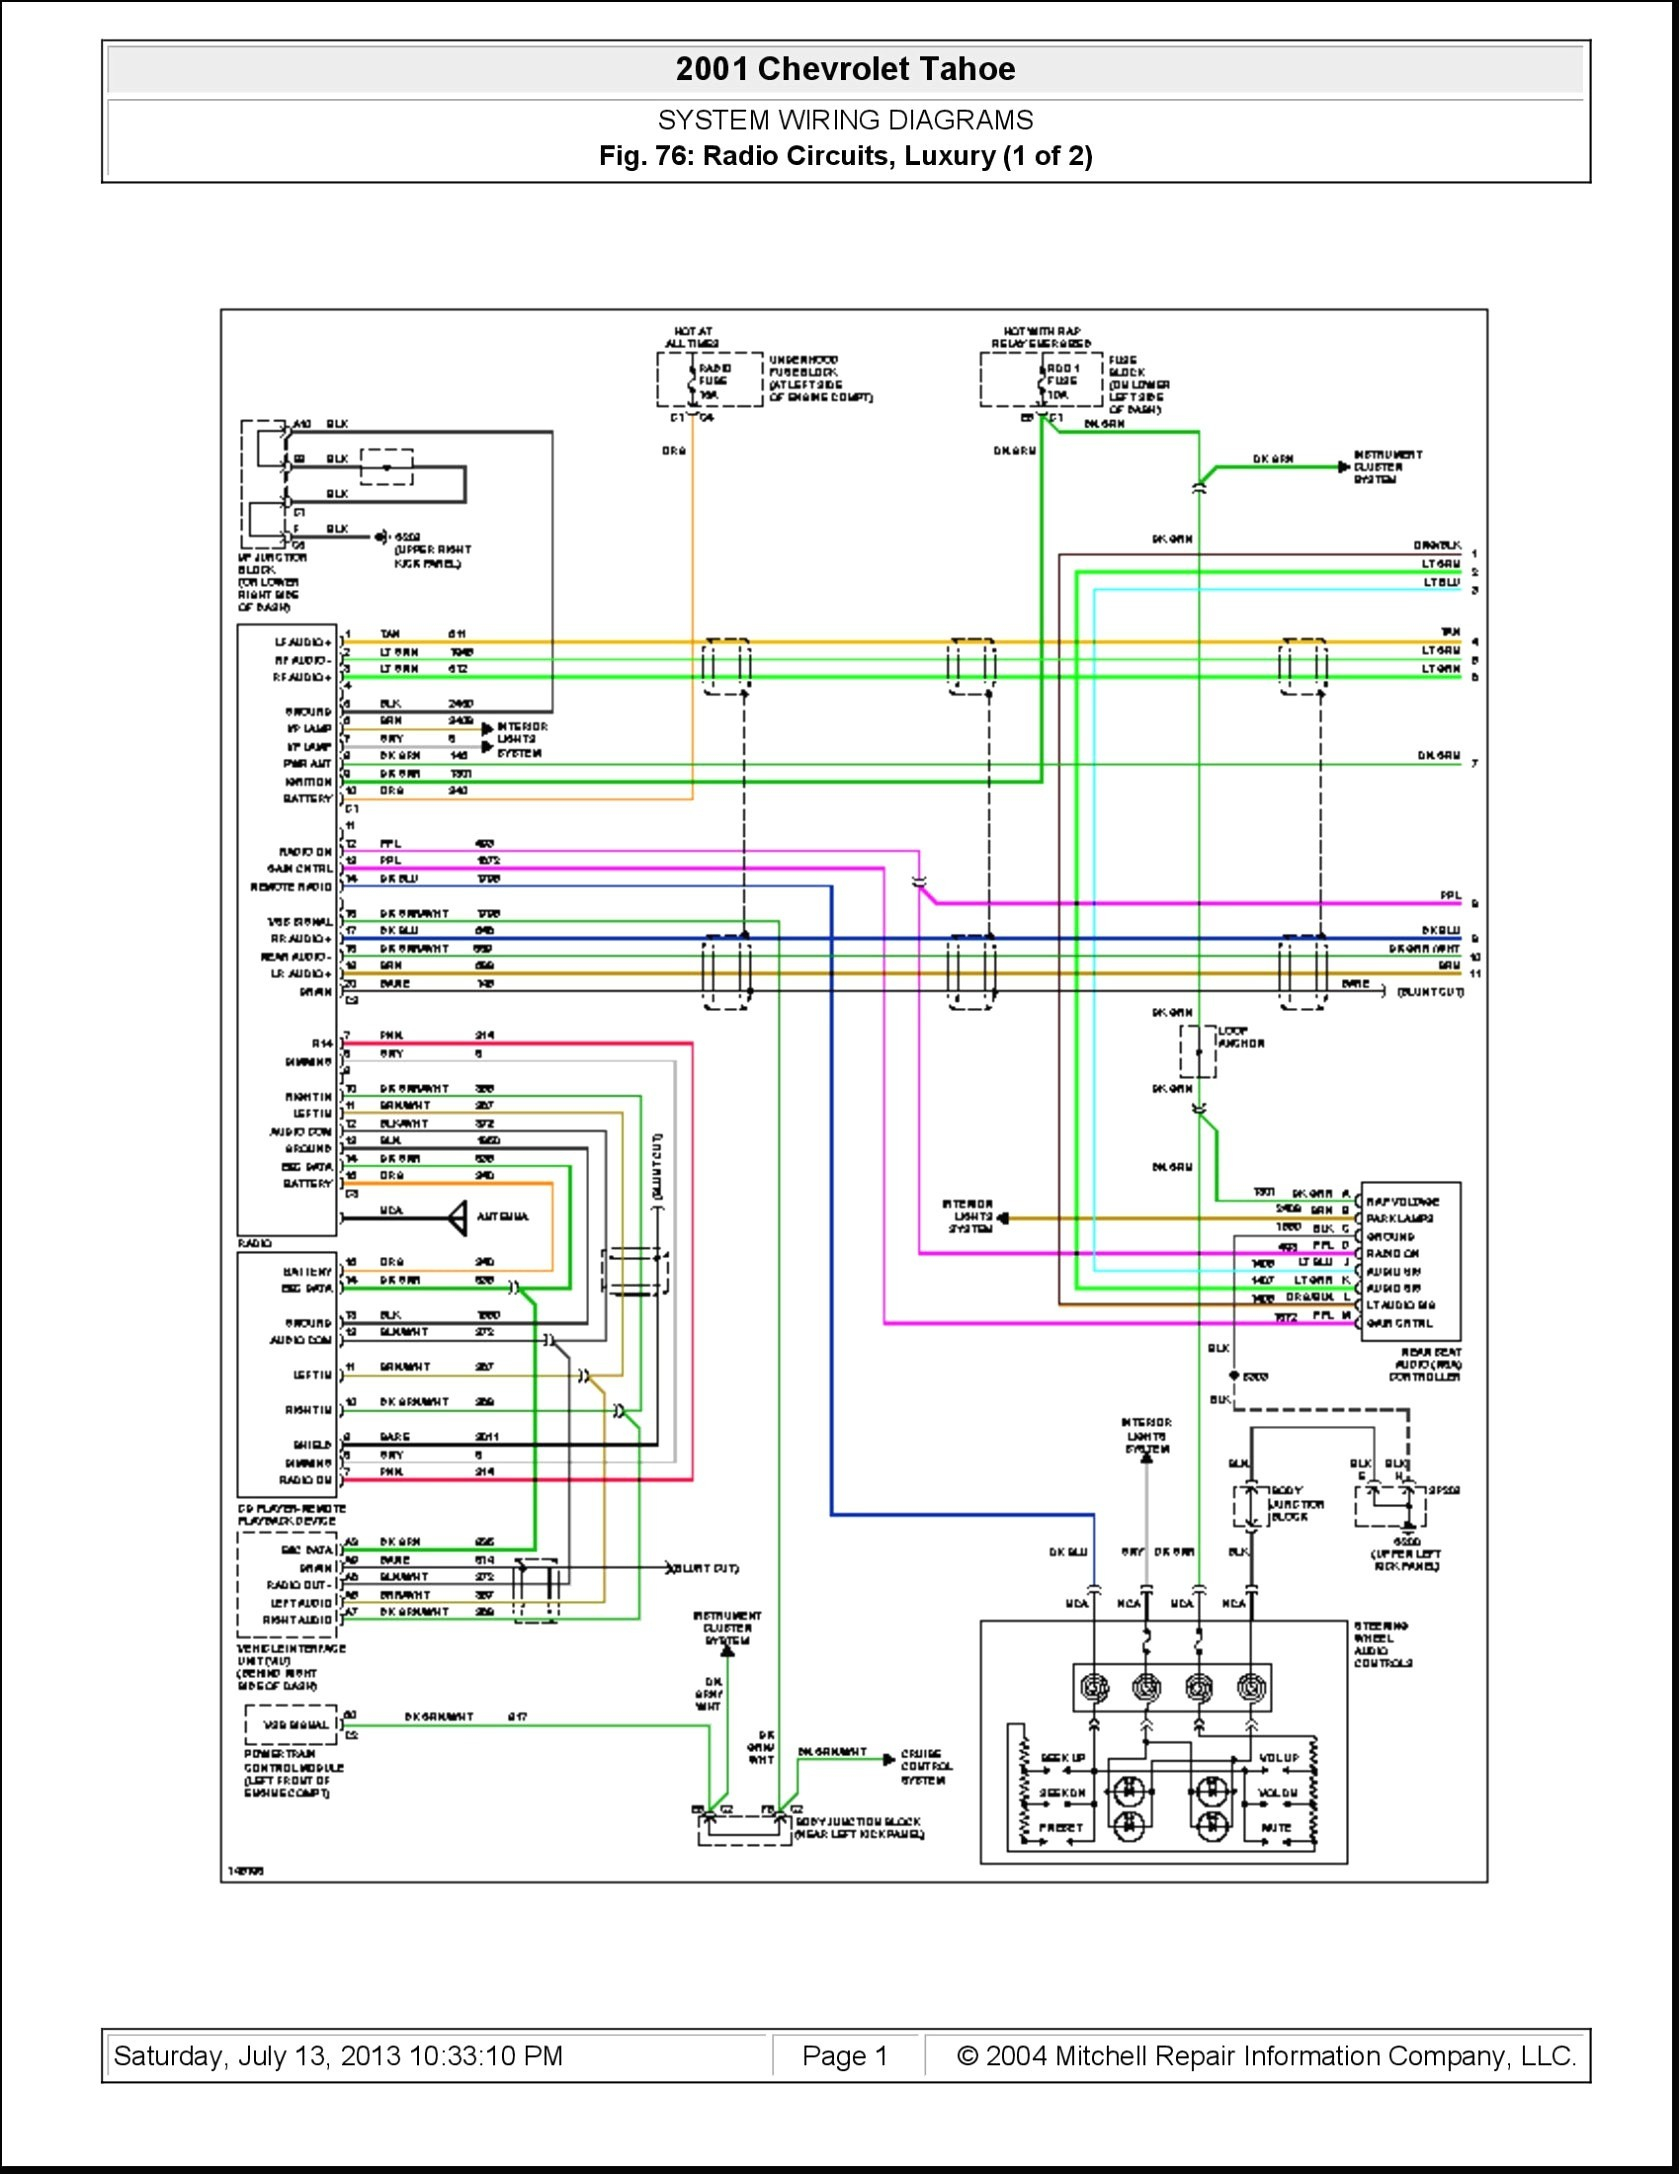 2000 Chevy Blazer Radio Wiring Diagram